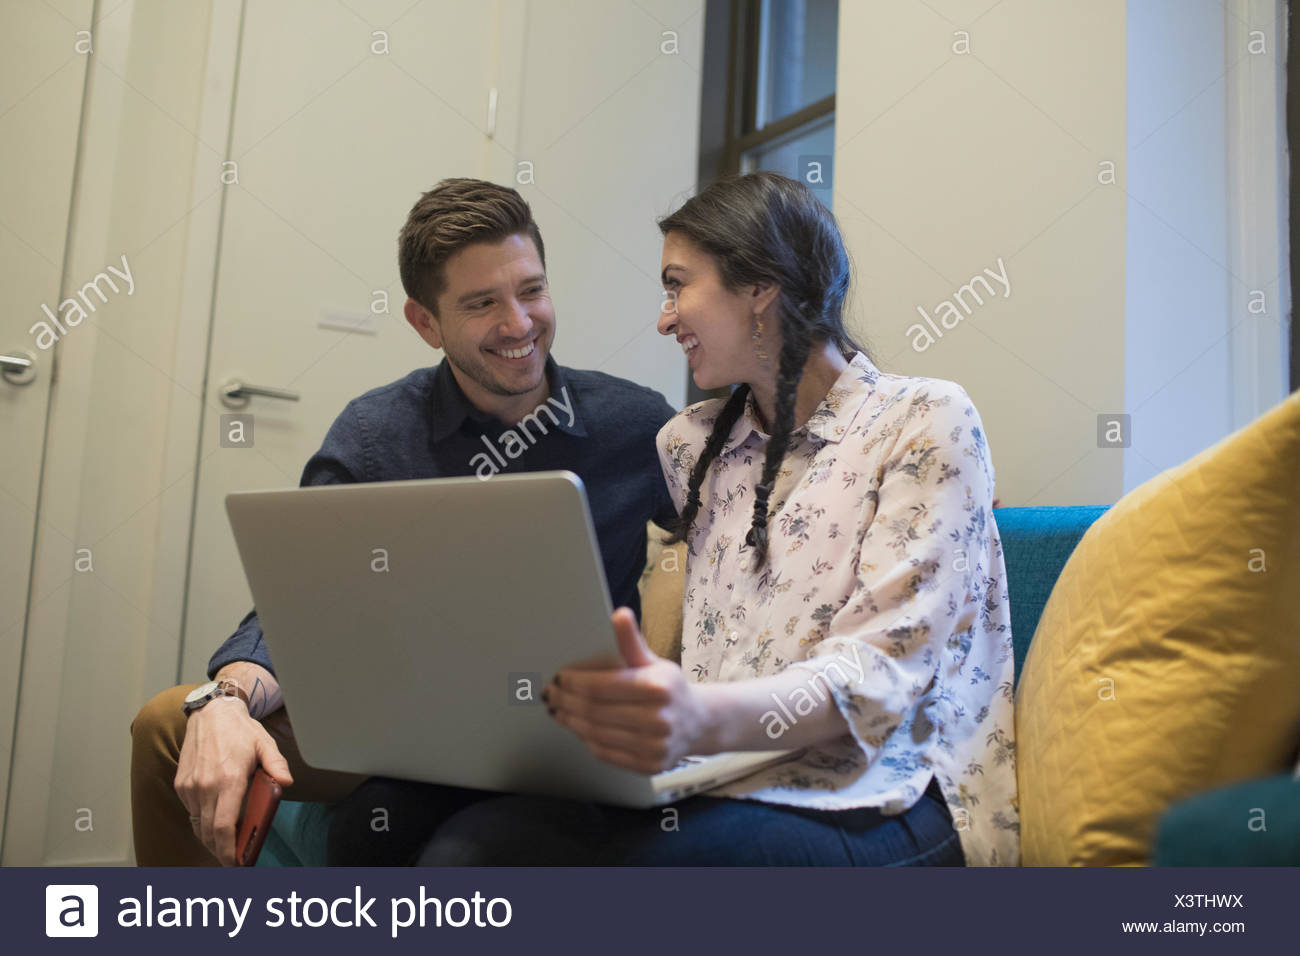 Young professionals working on laptop in an office Stock Photo